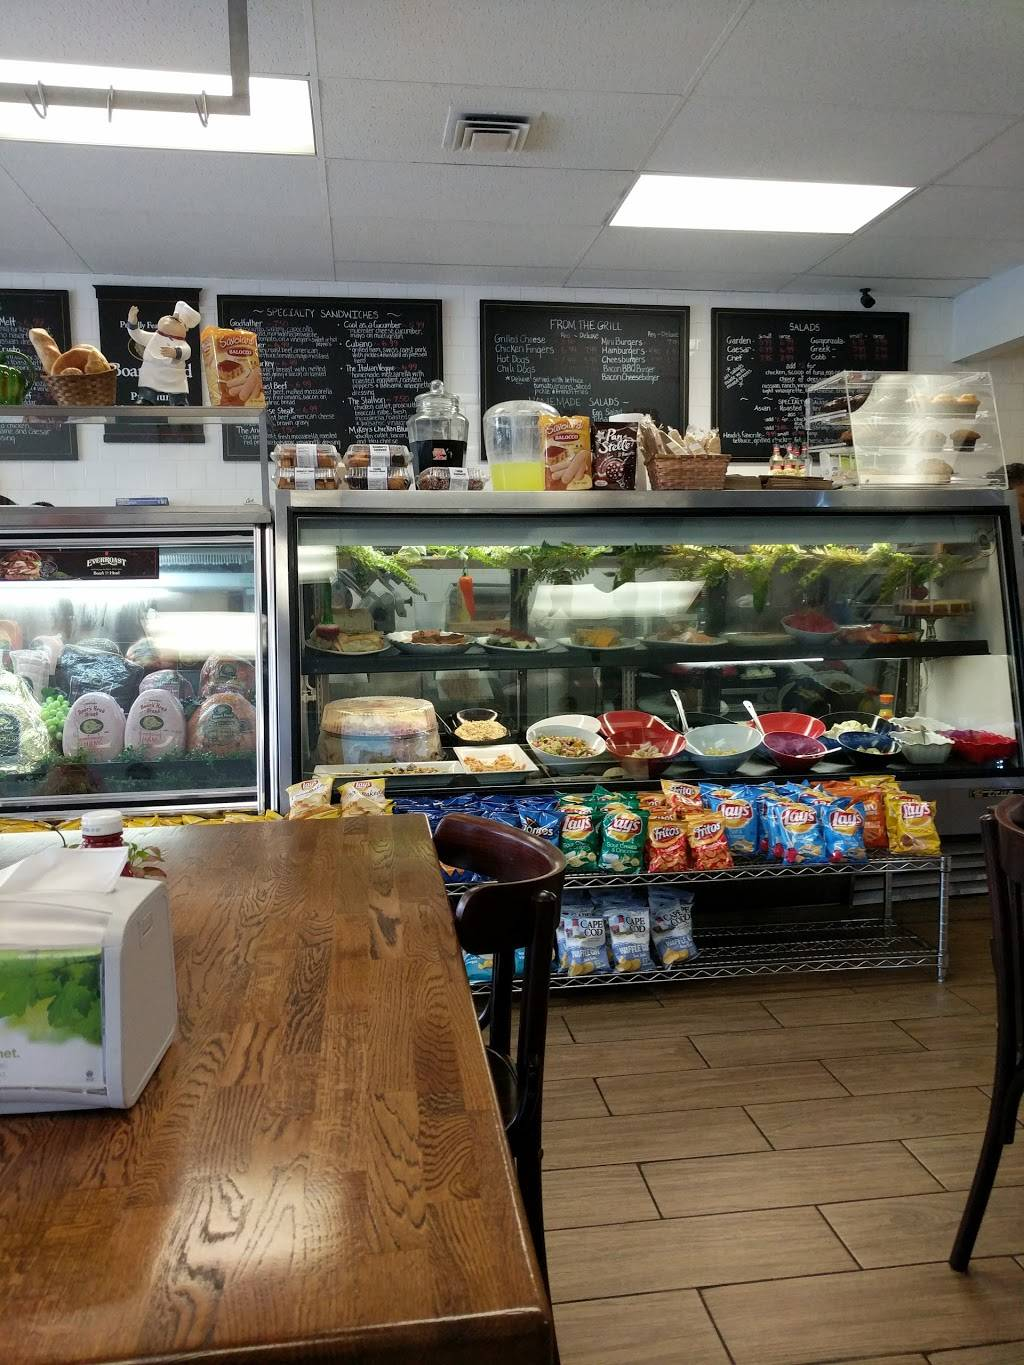 Brookfield Deli & Catering | restaurant | 782 Federal Rd, Brookfield, CT 06804, USA | 2037409449 OR +1 203-740-9449